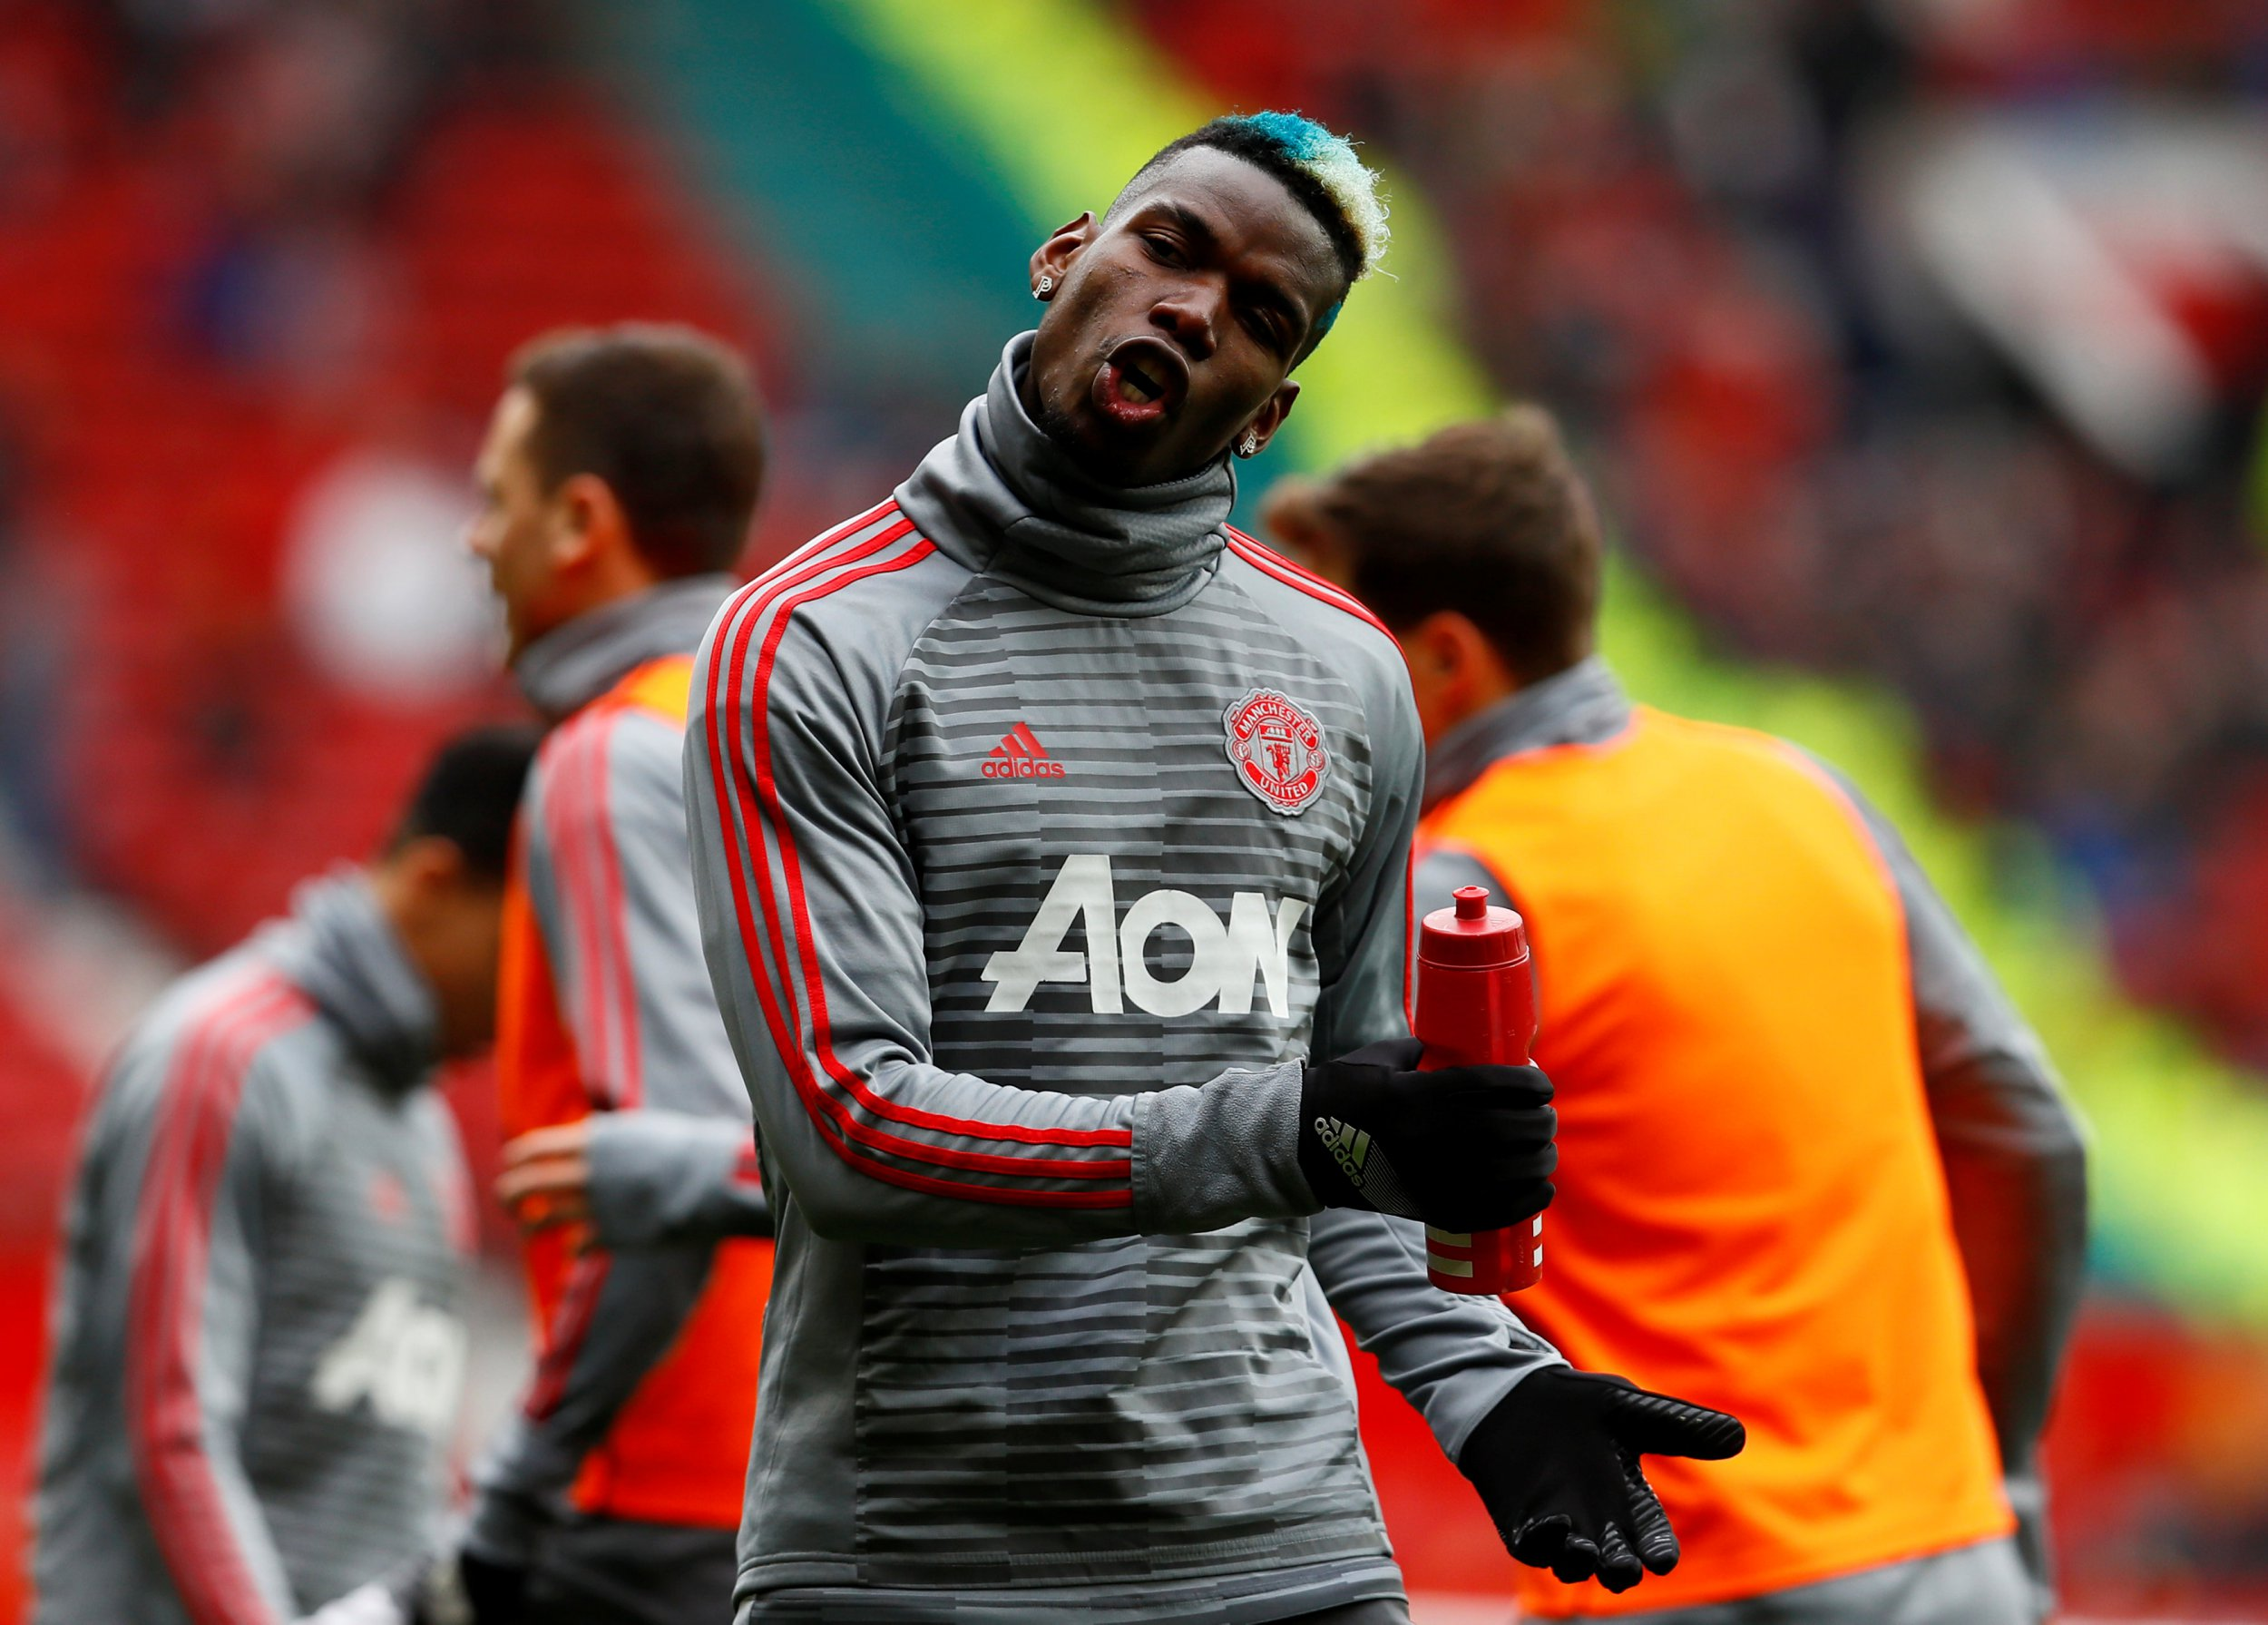 "Soccer Football - Premier League - Manchester United vs Swansea City - Old Trafford, Manchester, Britain - March 31, 2018 Manchester United's Paul Pogba during the warm up before the match Action Images via Reuters/Jason Cairnduff EDITORIAL USE ONLY. No use with unauthorized audio, video, data, fixture lists, club/league logos or ""live"" services. Online in-match use limited to 75 images, no video emulation. No use in betting, games or single club/league/player publications. Please contact your account representative for further details."